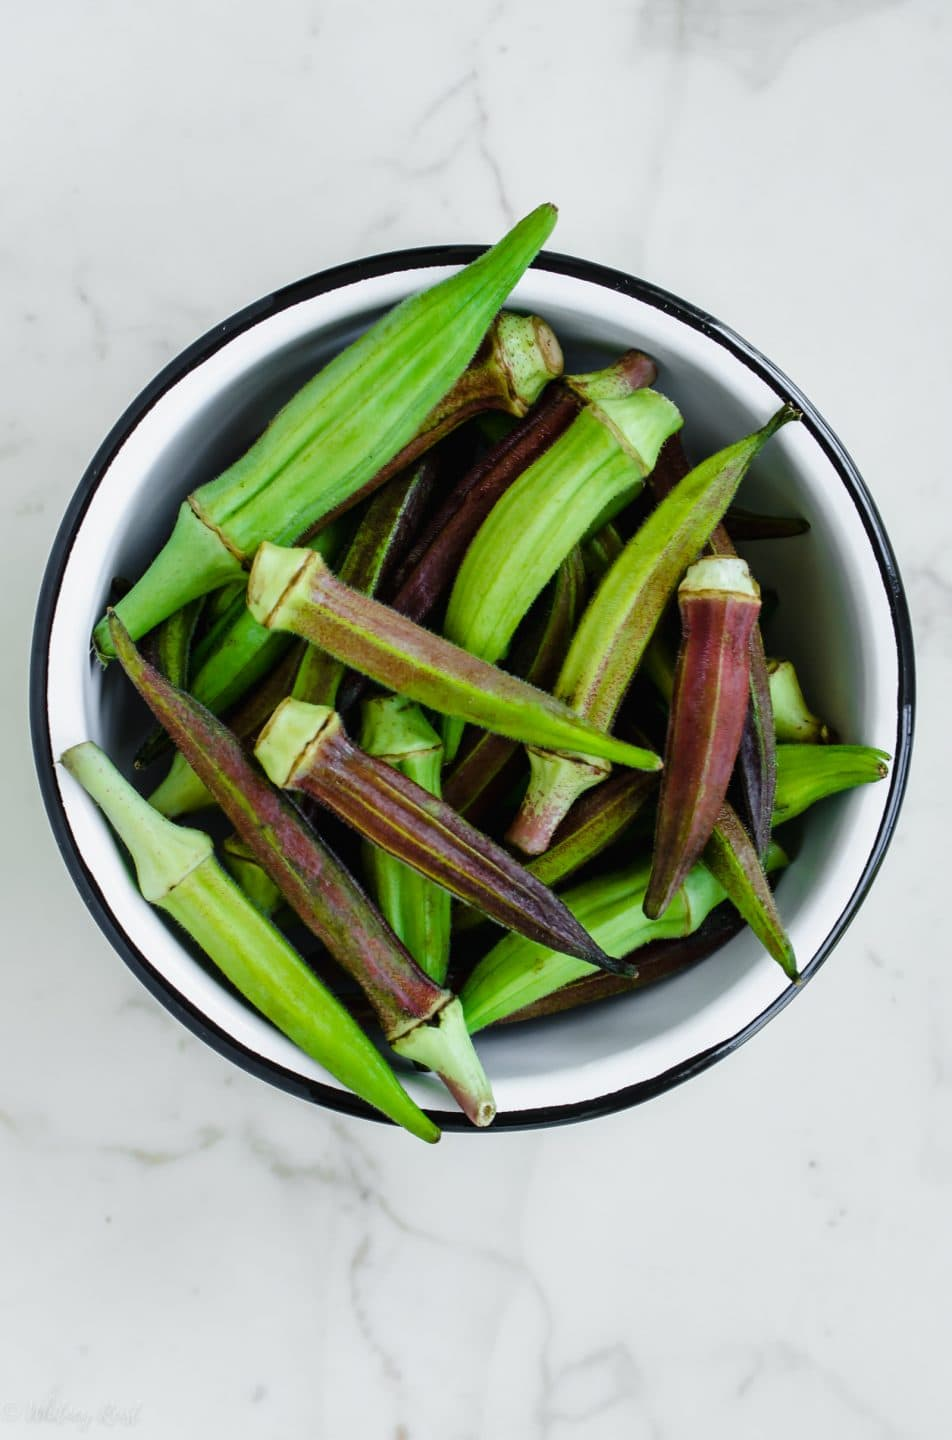 A white bowl filled with fresh okra pods on a white marble surface.